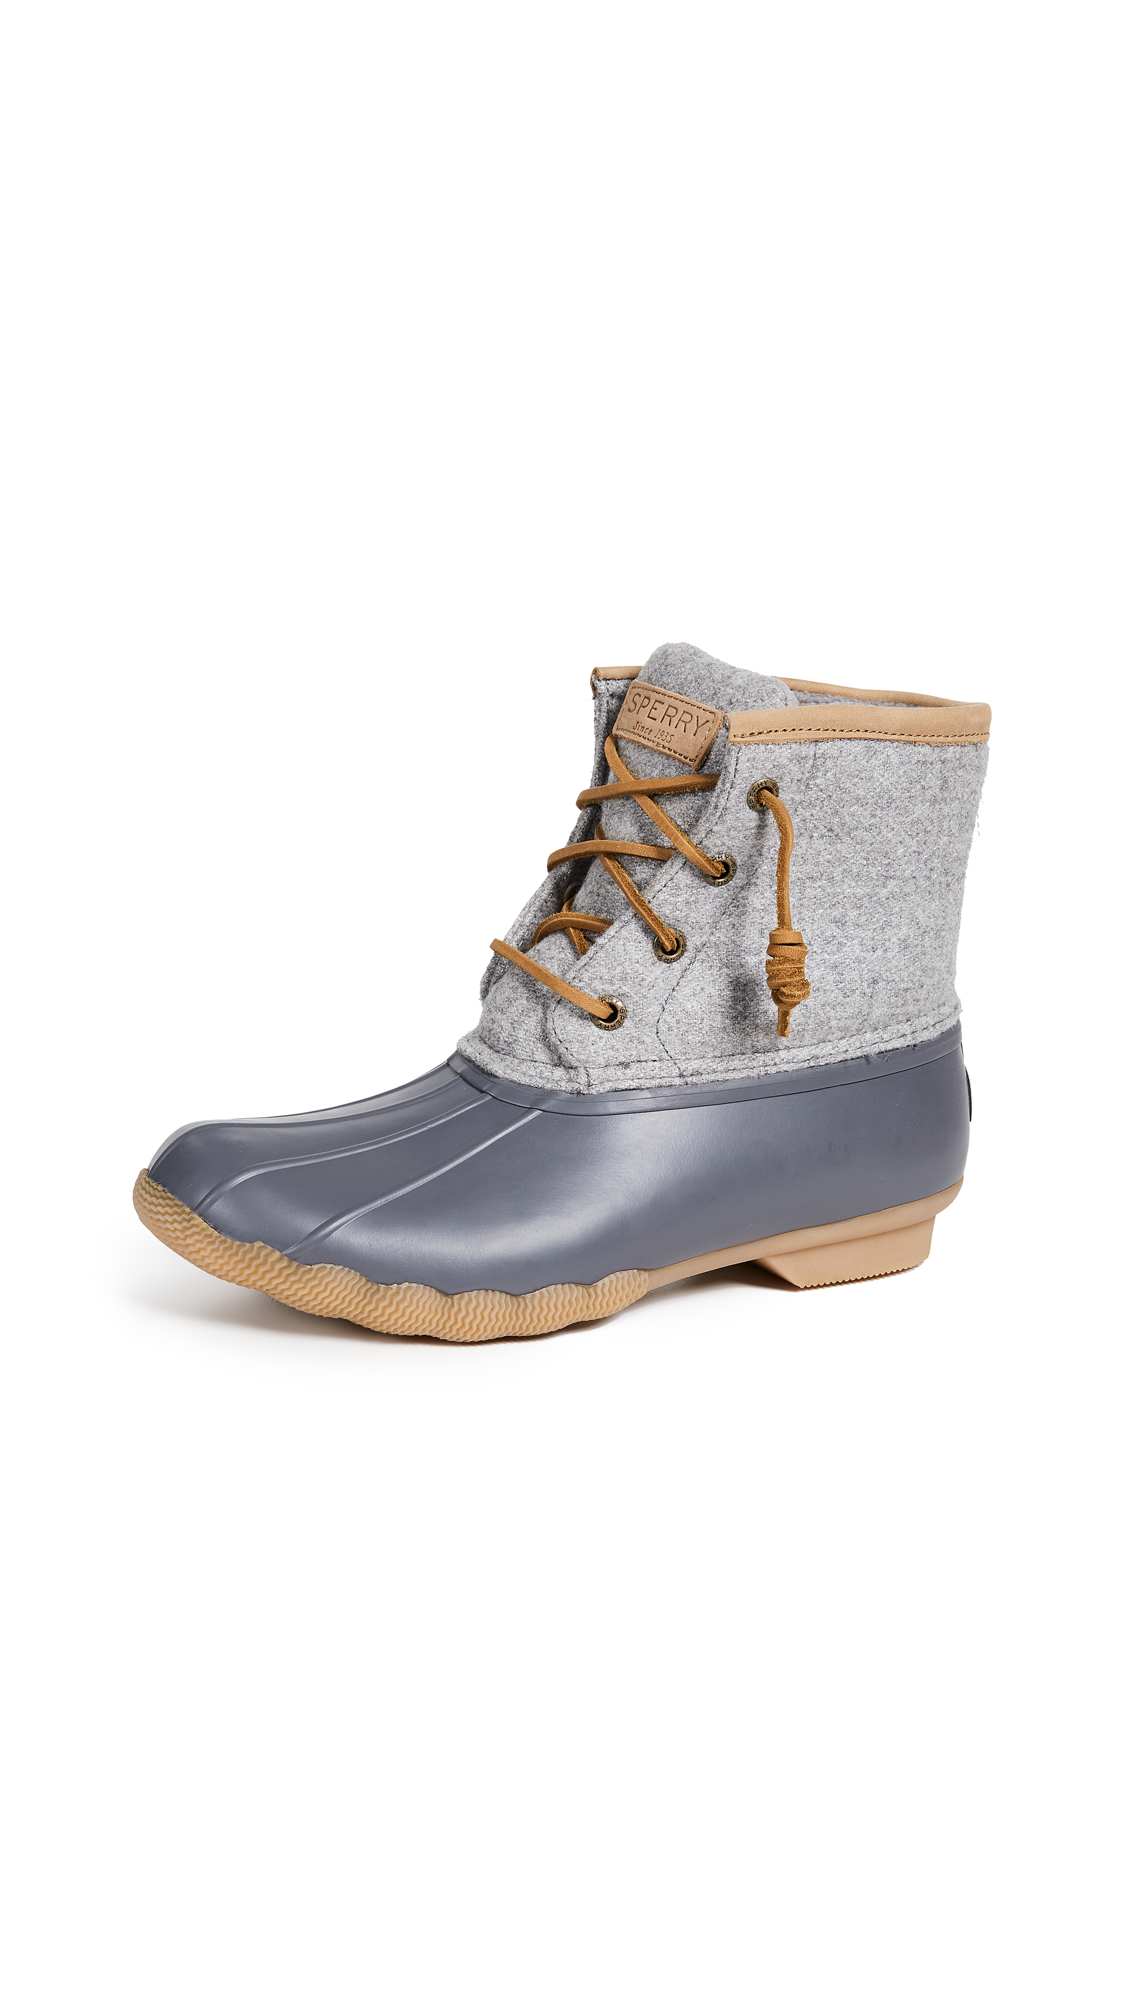 Sperry Saltwater Embos Wool Boots - Dark Grey